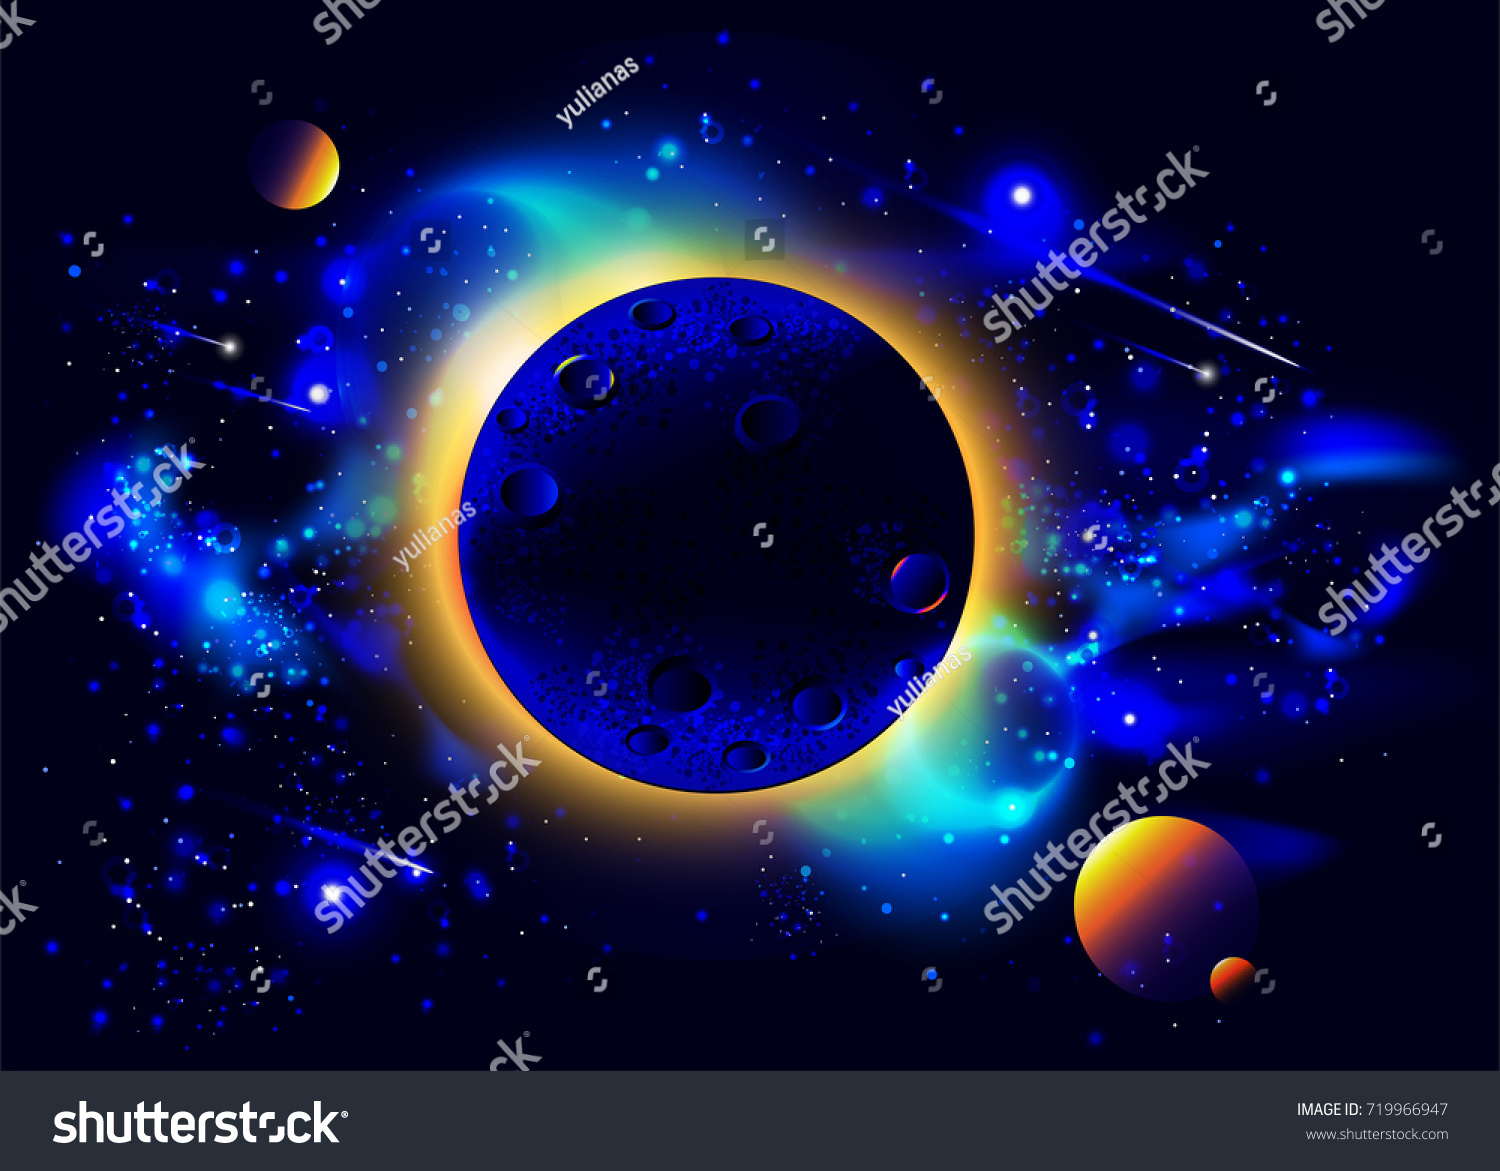 Space Background With Planets Stars Flares Nebula Milky Way And Eclipse